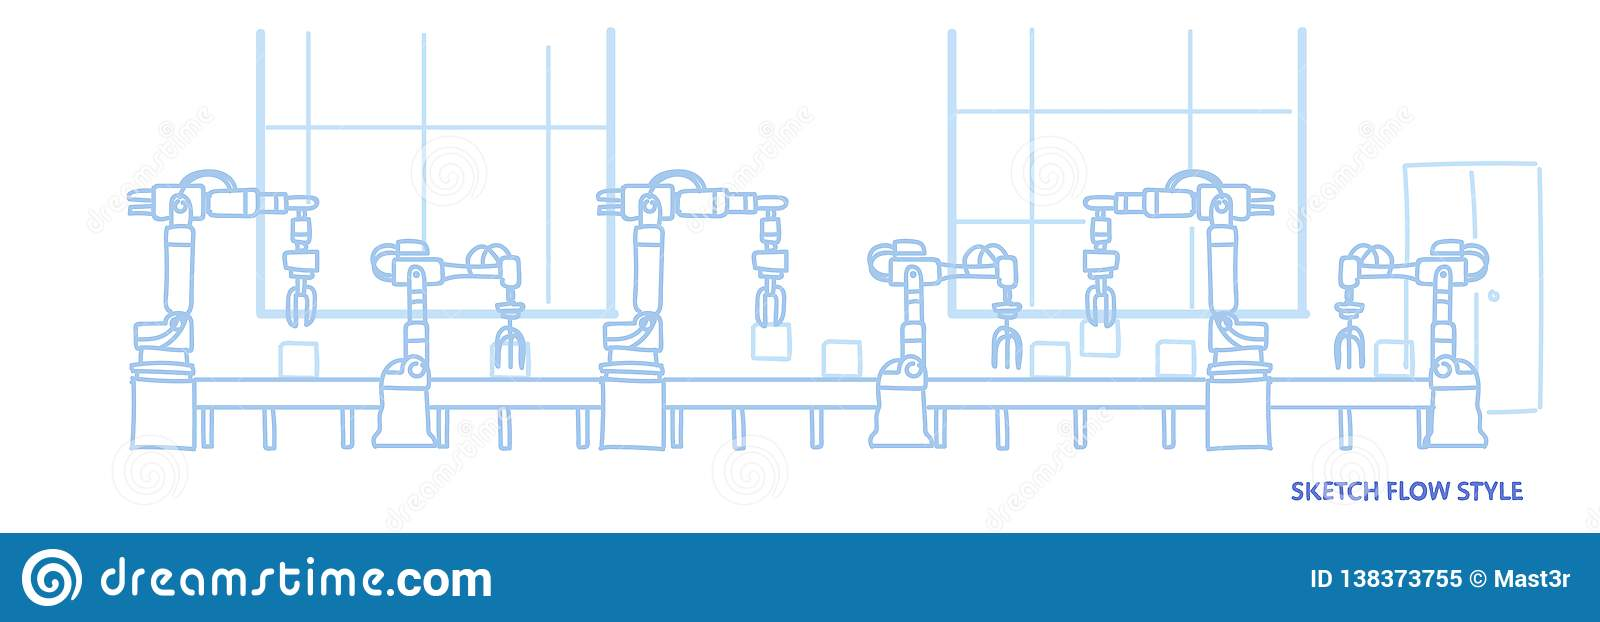 Factory production conveyor automatic assembly line machinery industrial automation industry concept sketch flow style